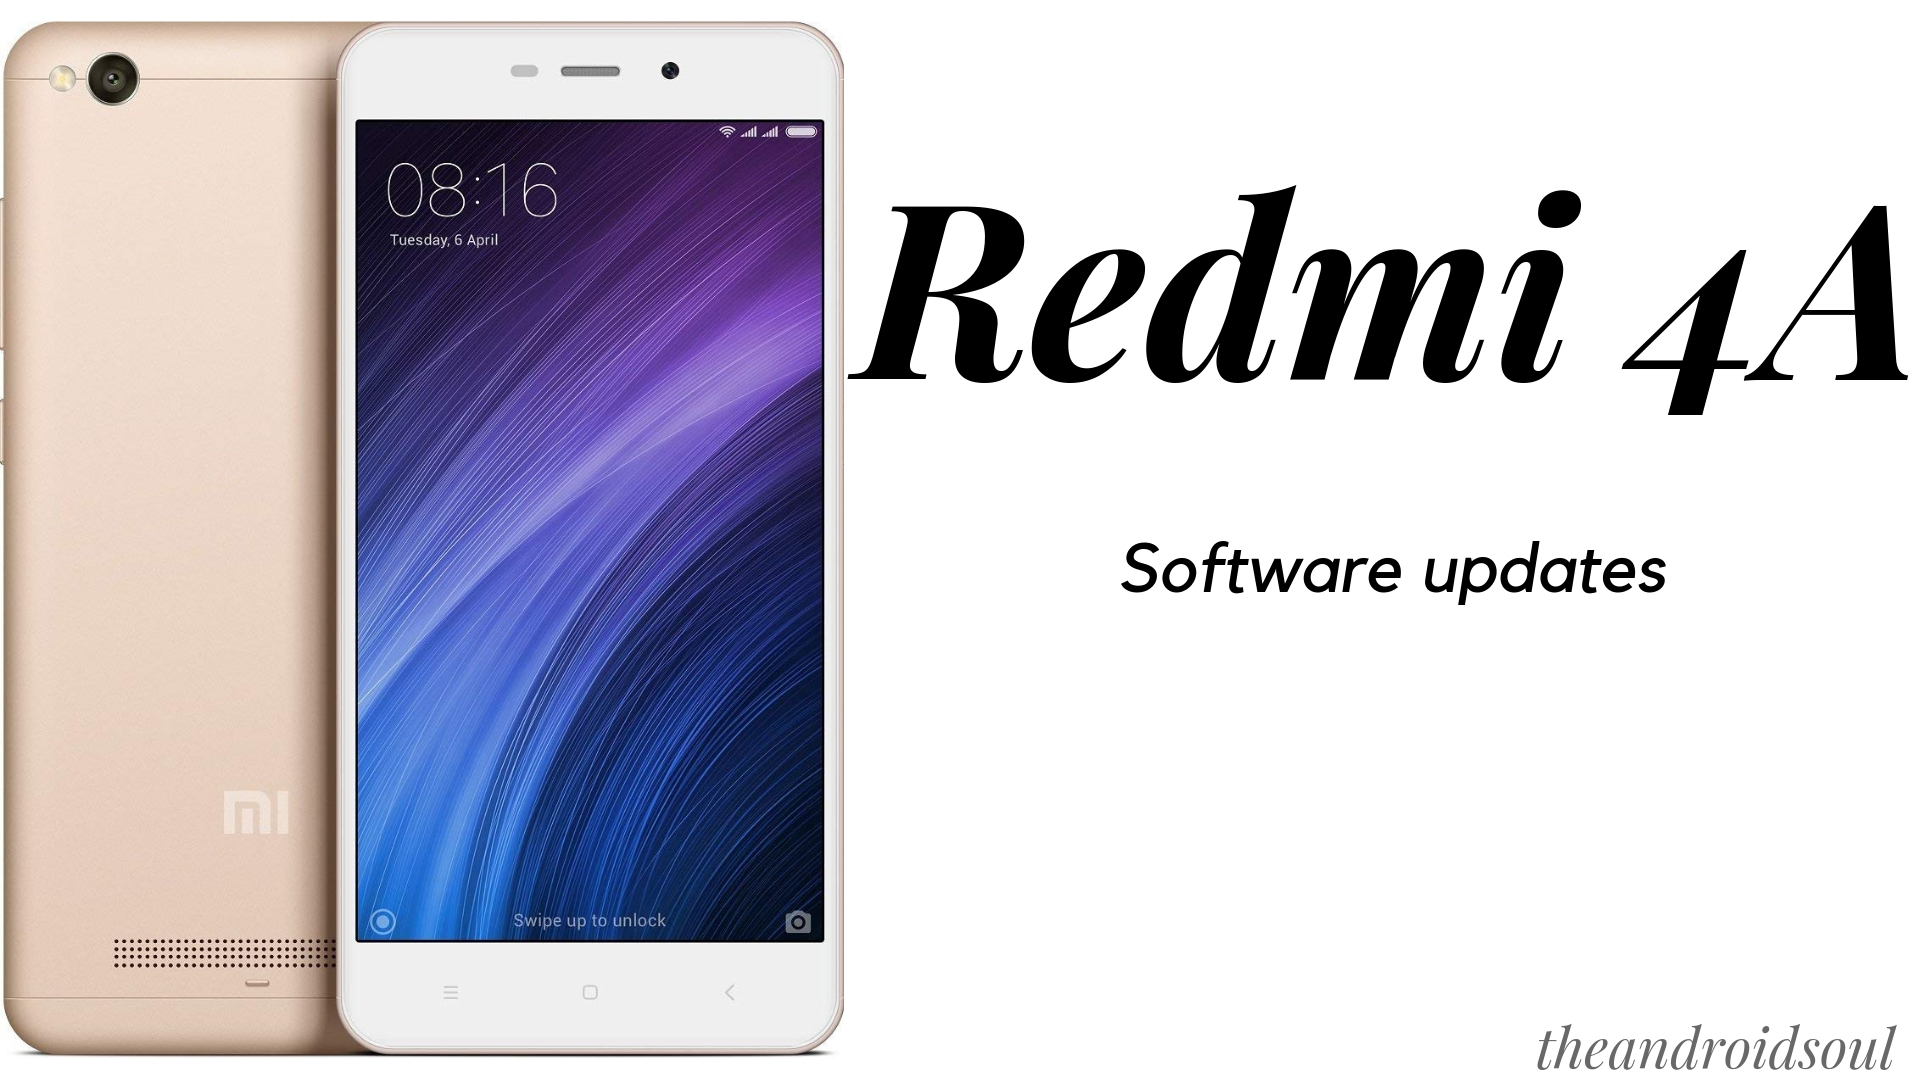 Redmi 4A software updates